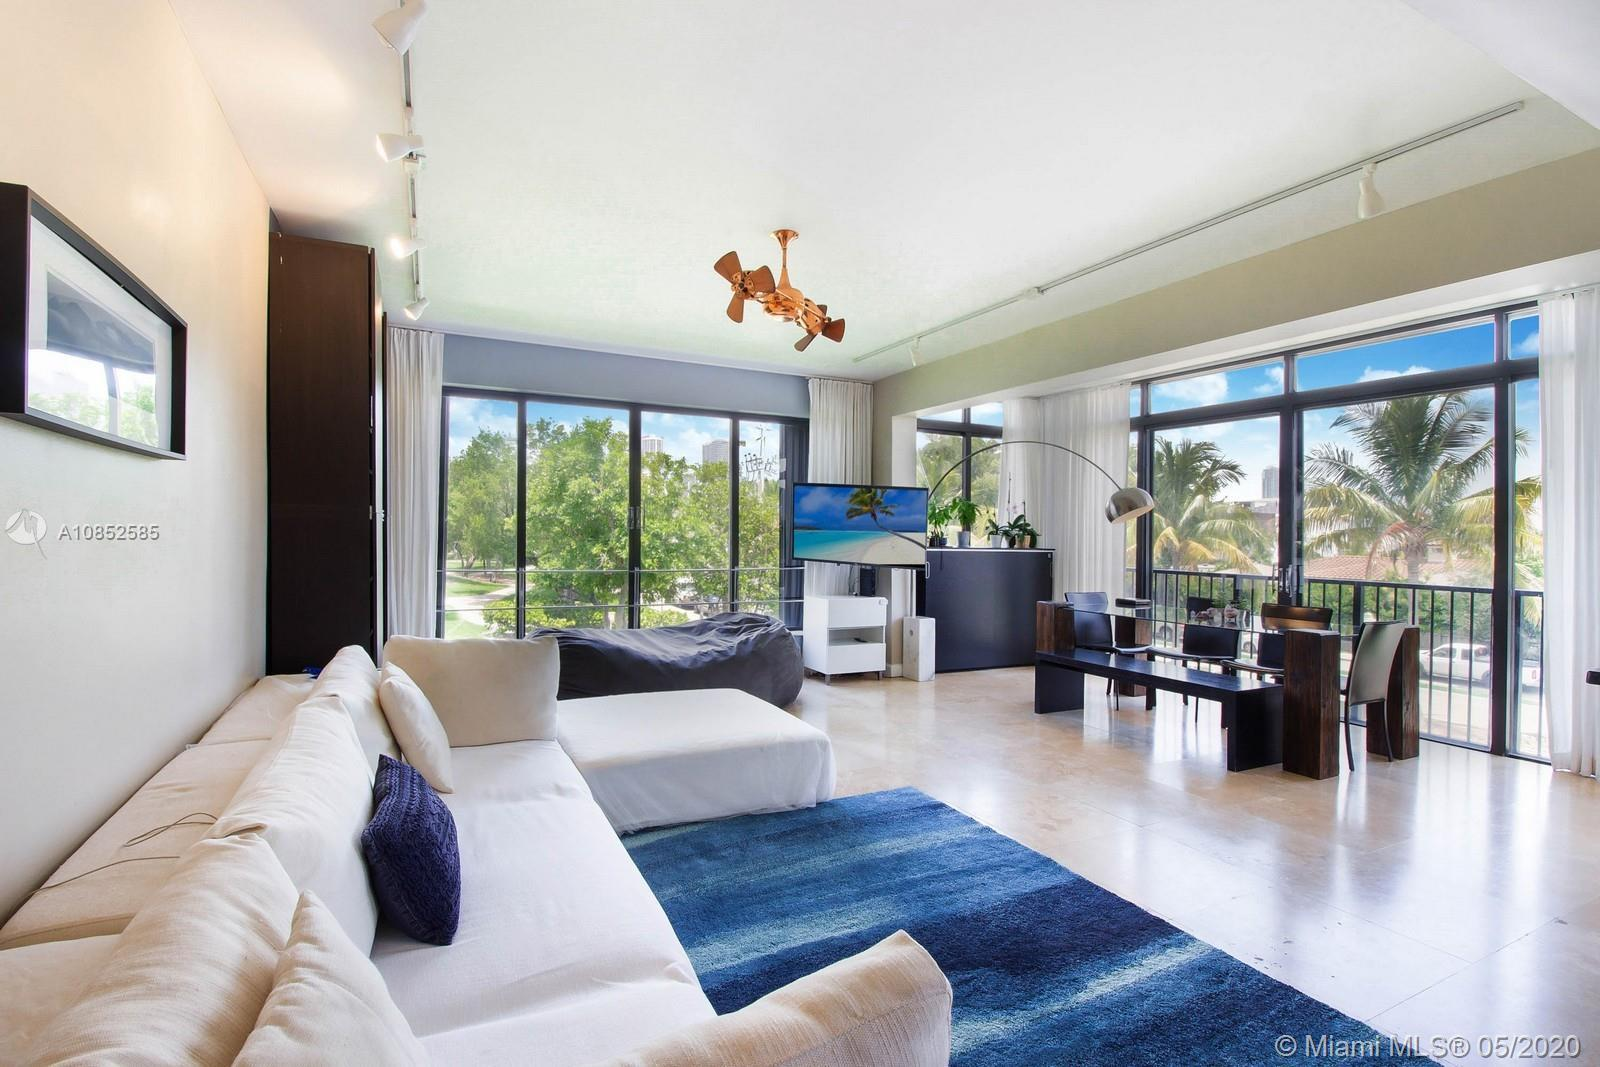 This Venetian townhome offers spectacular panoramic views, with 2,400 SF living space and a 1,200 SF